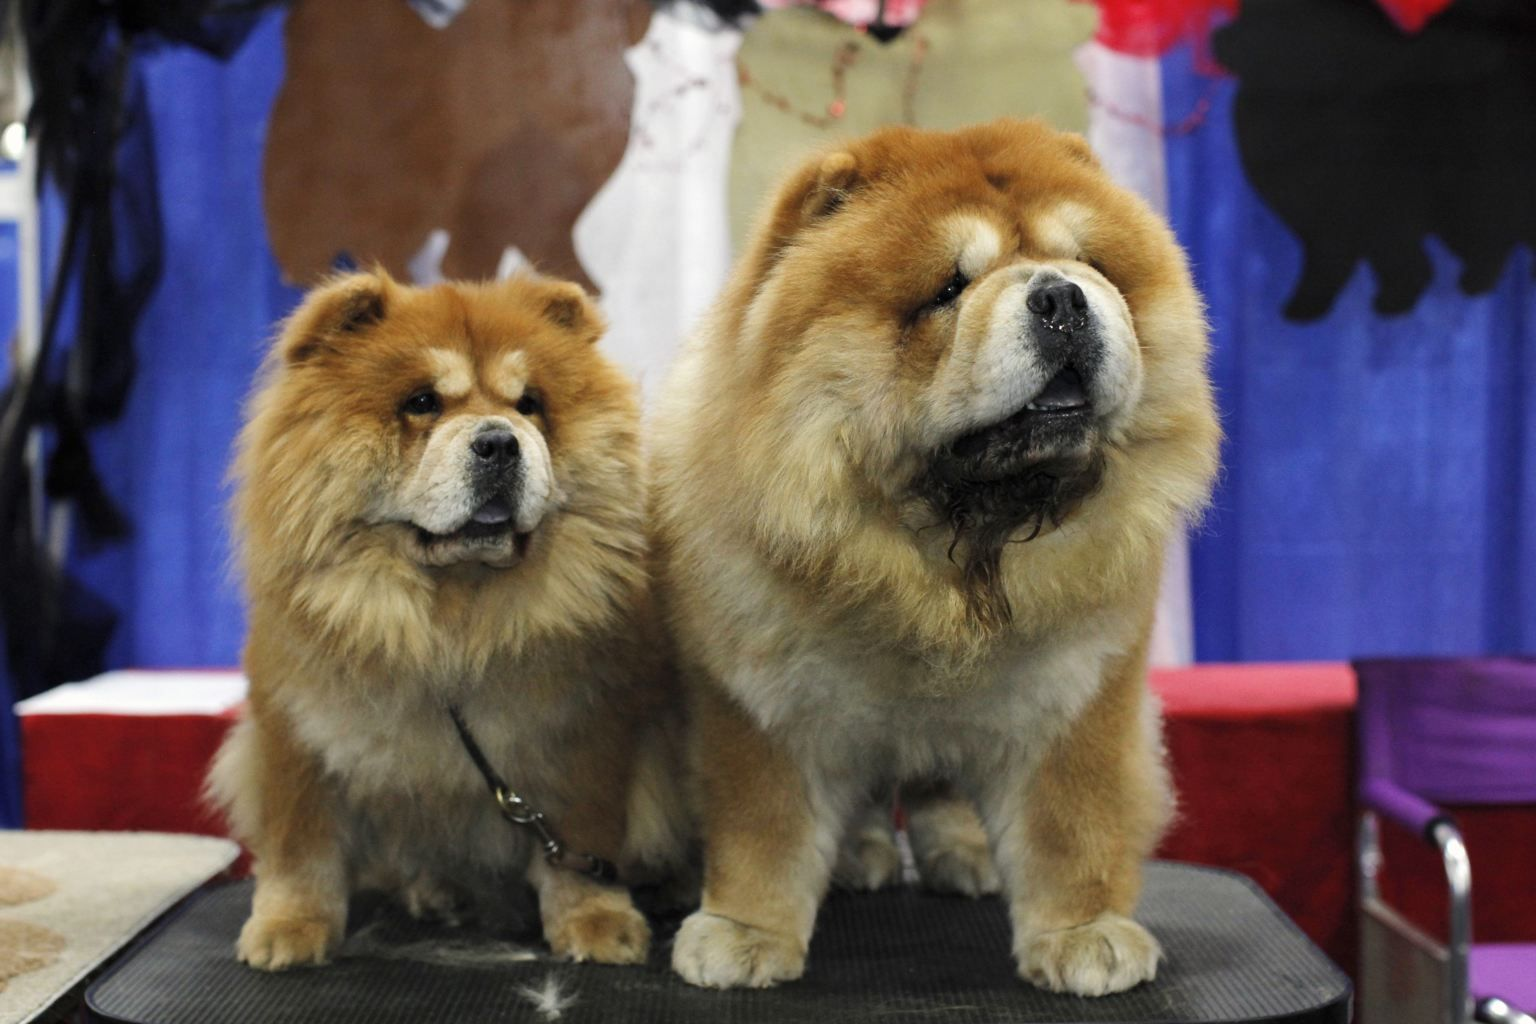 Quixote 6 And Ashley L 4 Of The Chow Chow Breed Are